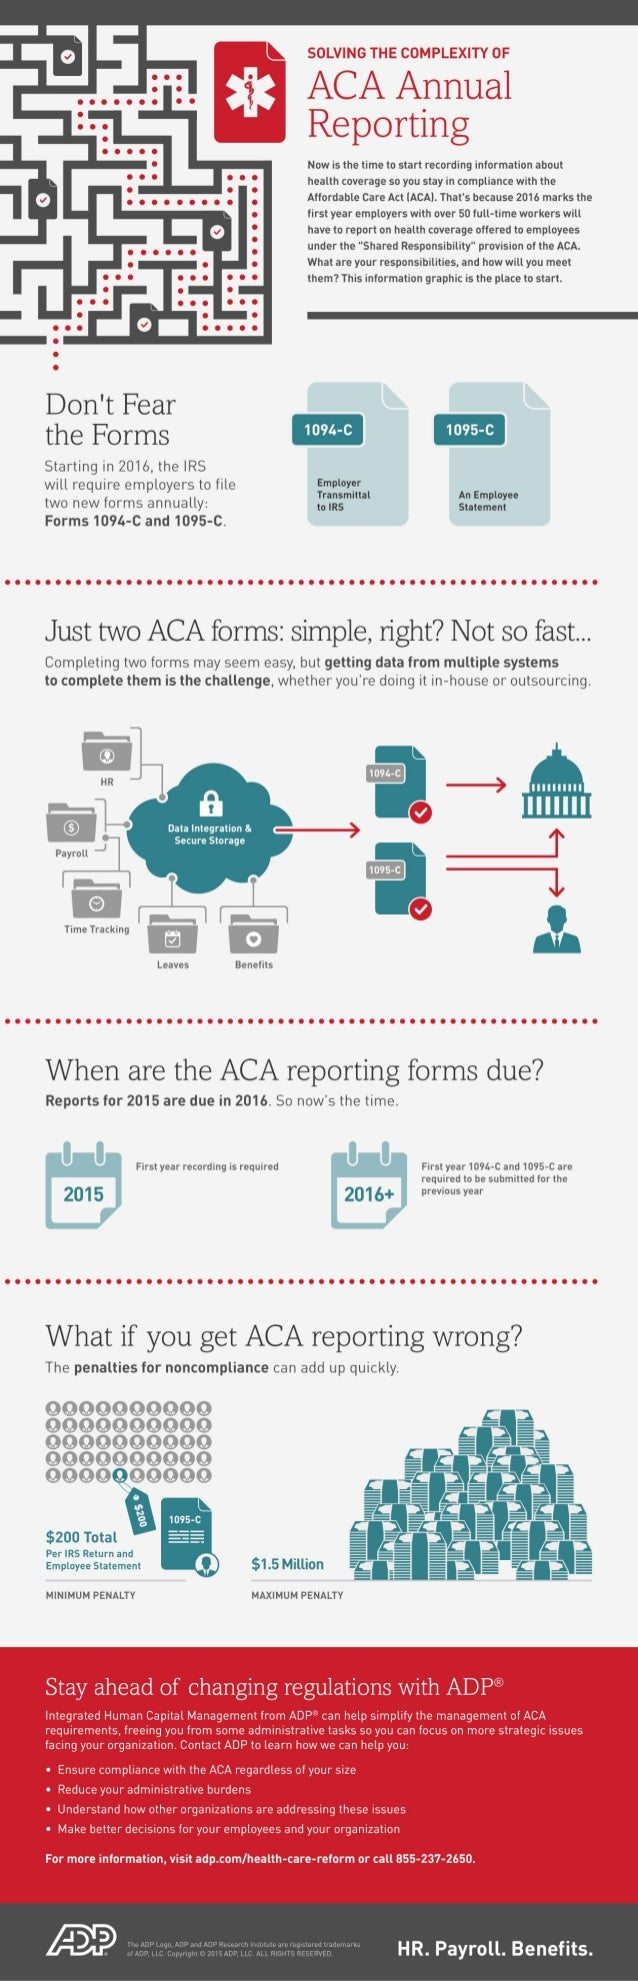 Affordable Care Act (ACA) Annual Reporting: Solving The Complexity